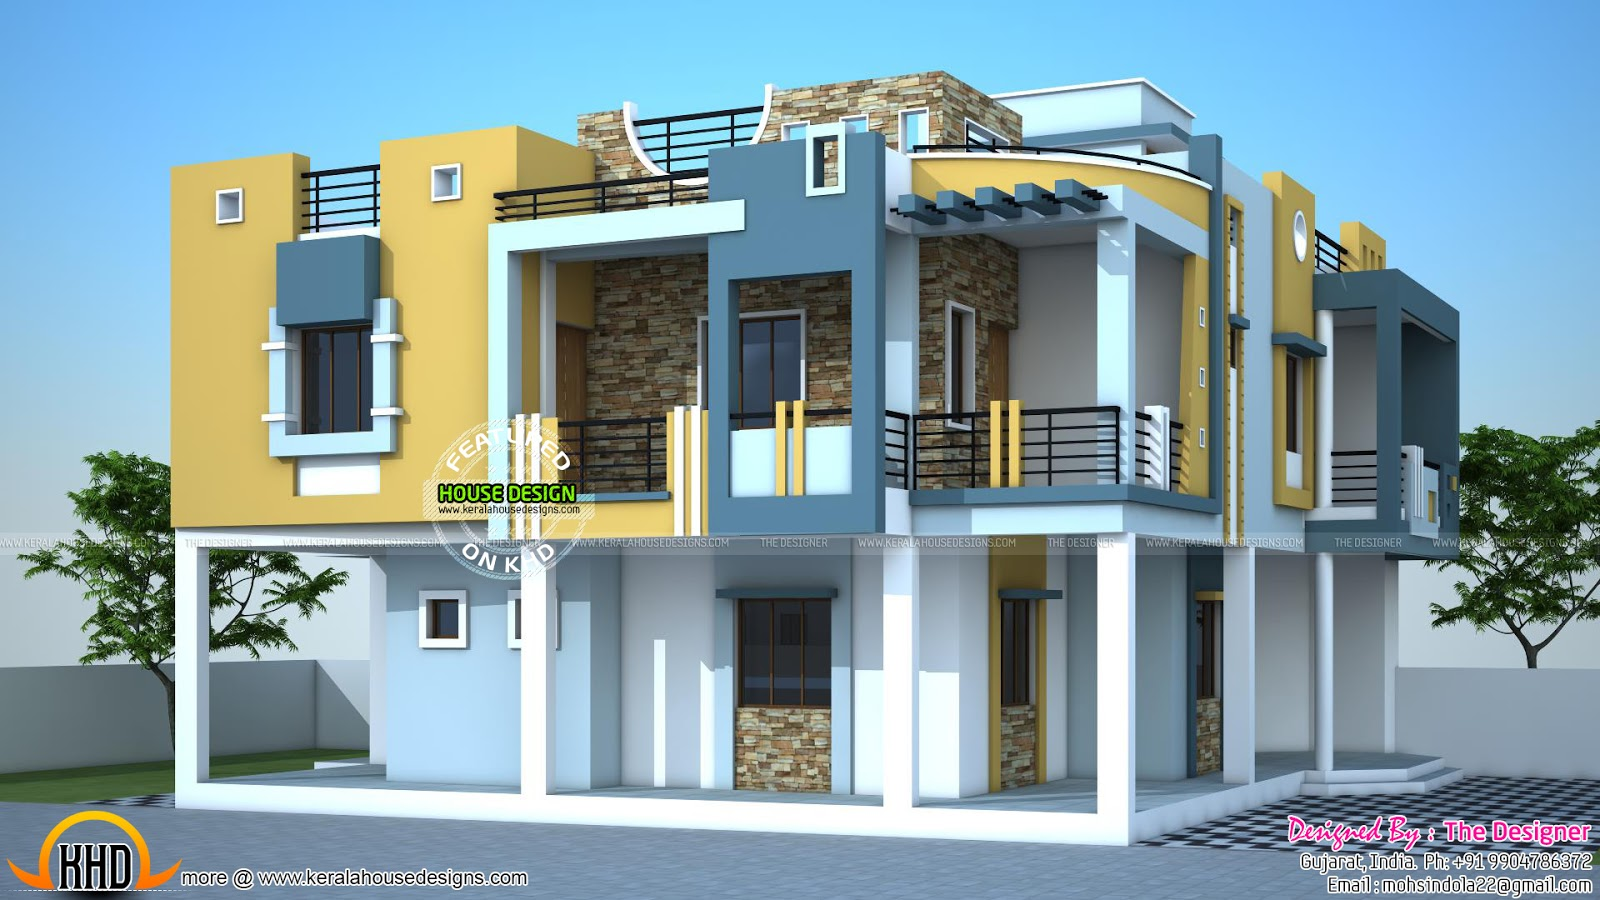 Modern duplex house in india kerala home design and for Duplex home plans indian style